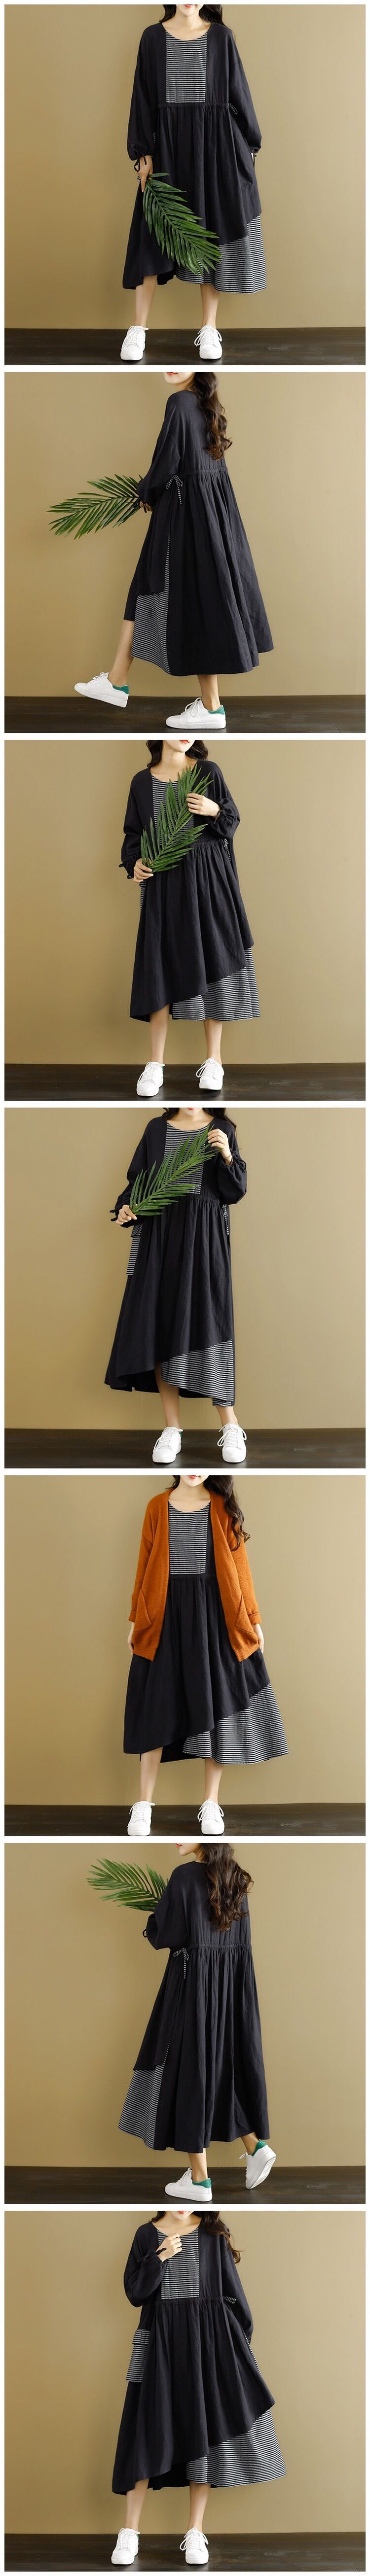 Fabric: Fabric has some stretch Season: Autumn, Spring, Winter Type: Dress Pattern Type: Plain Sleeve Length: Long Sleeve Color: Black Dresses Length:Maxi Style: Casual Material: Cotton Neckline: One